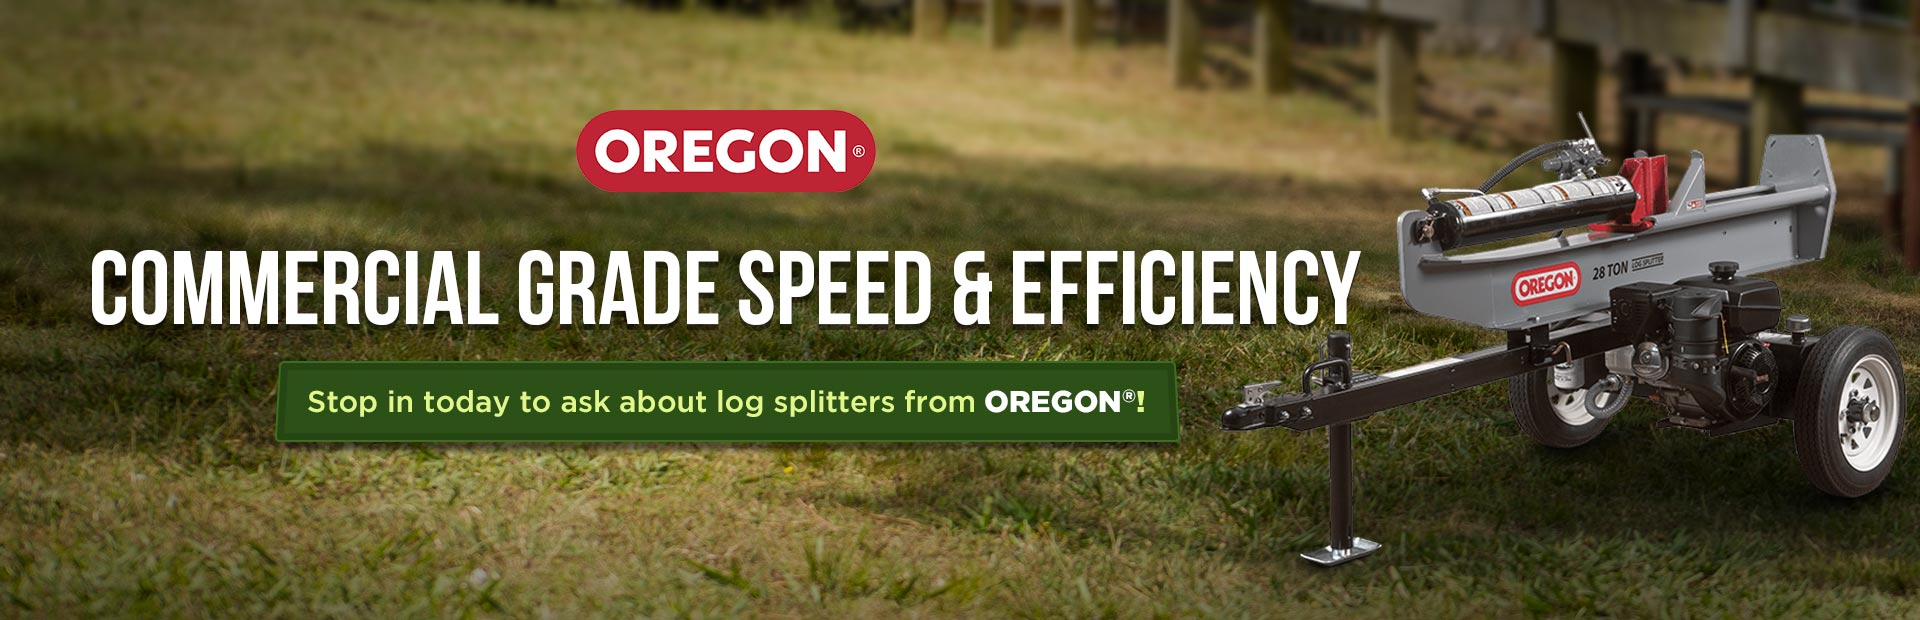 Stop in today to ask about log splitters from OREGON®!